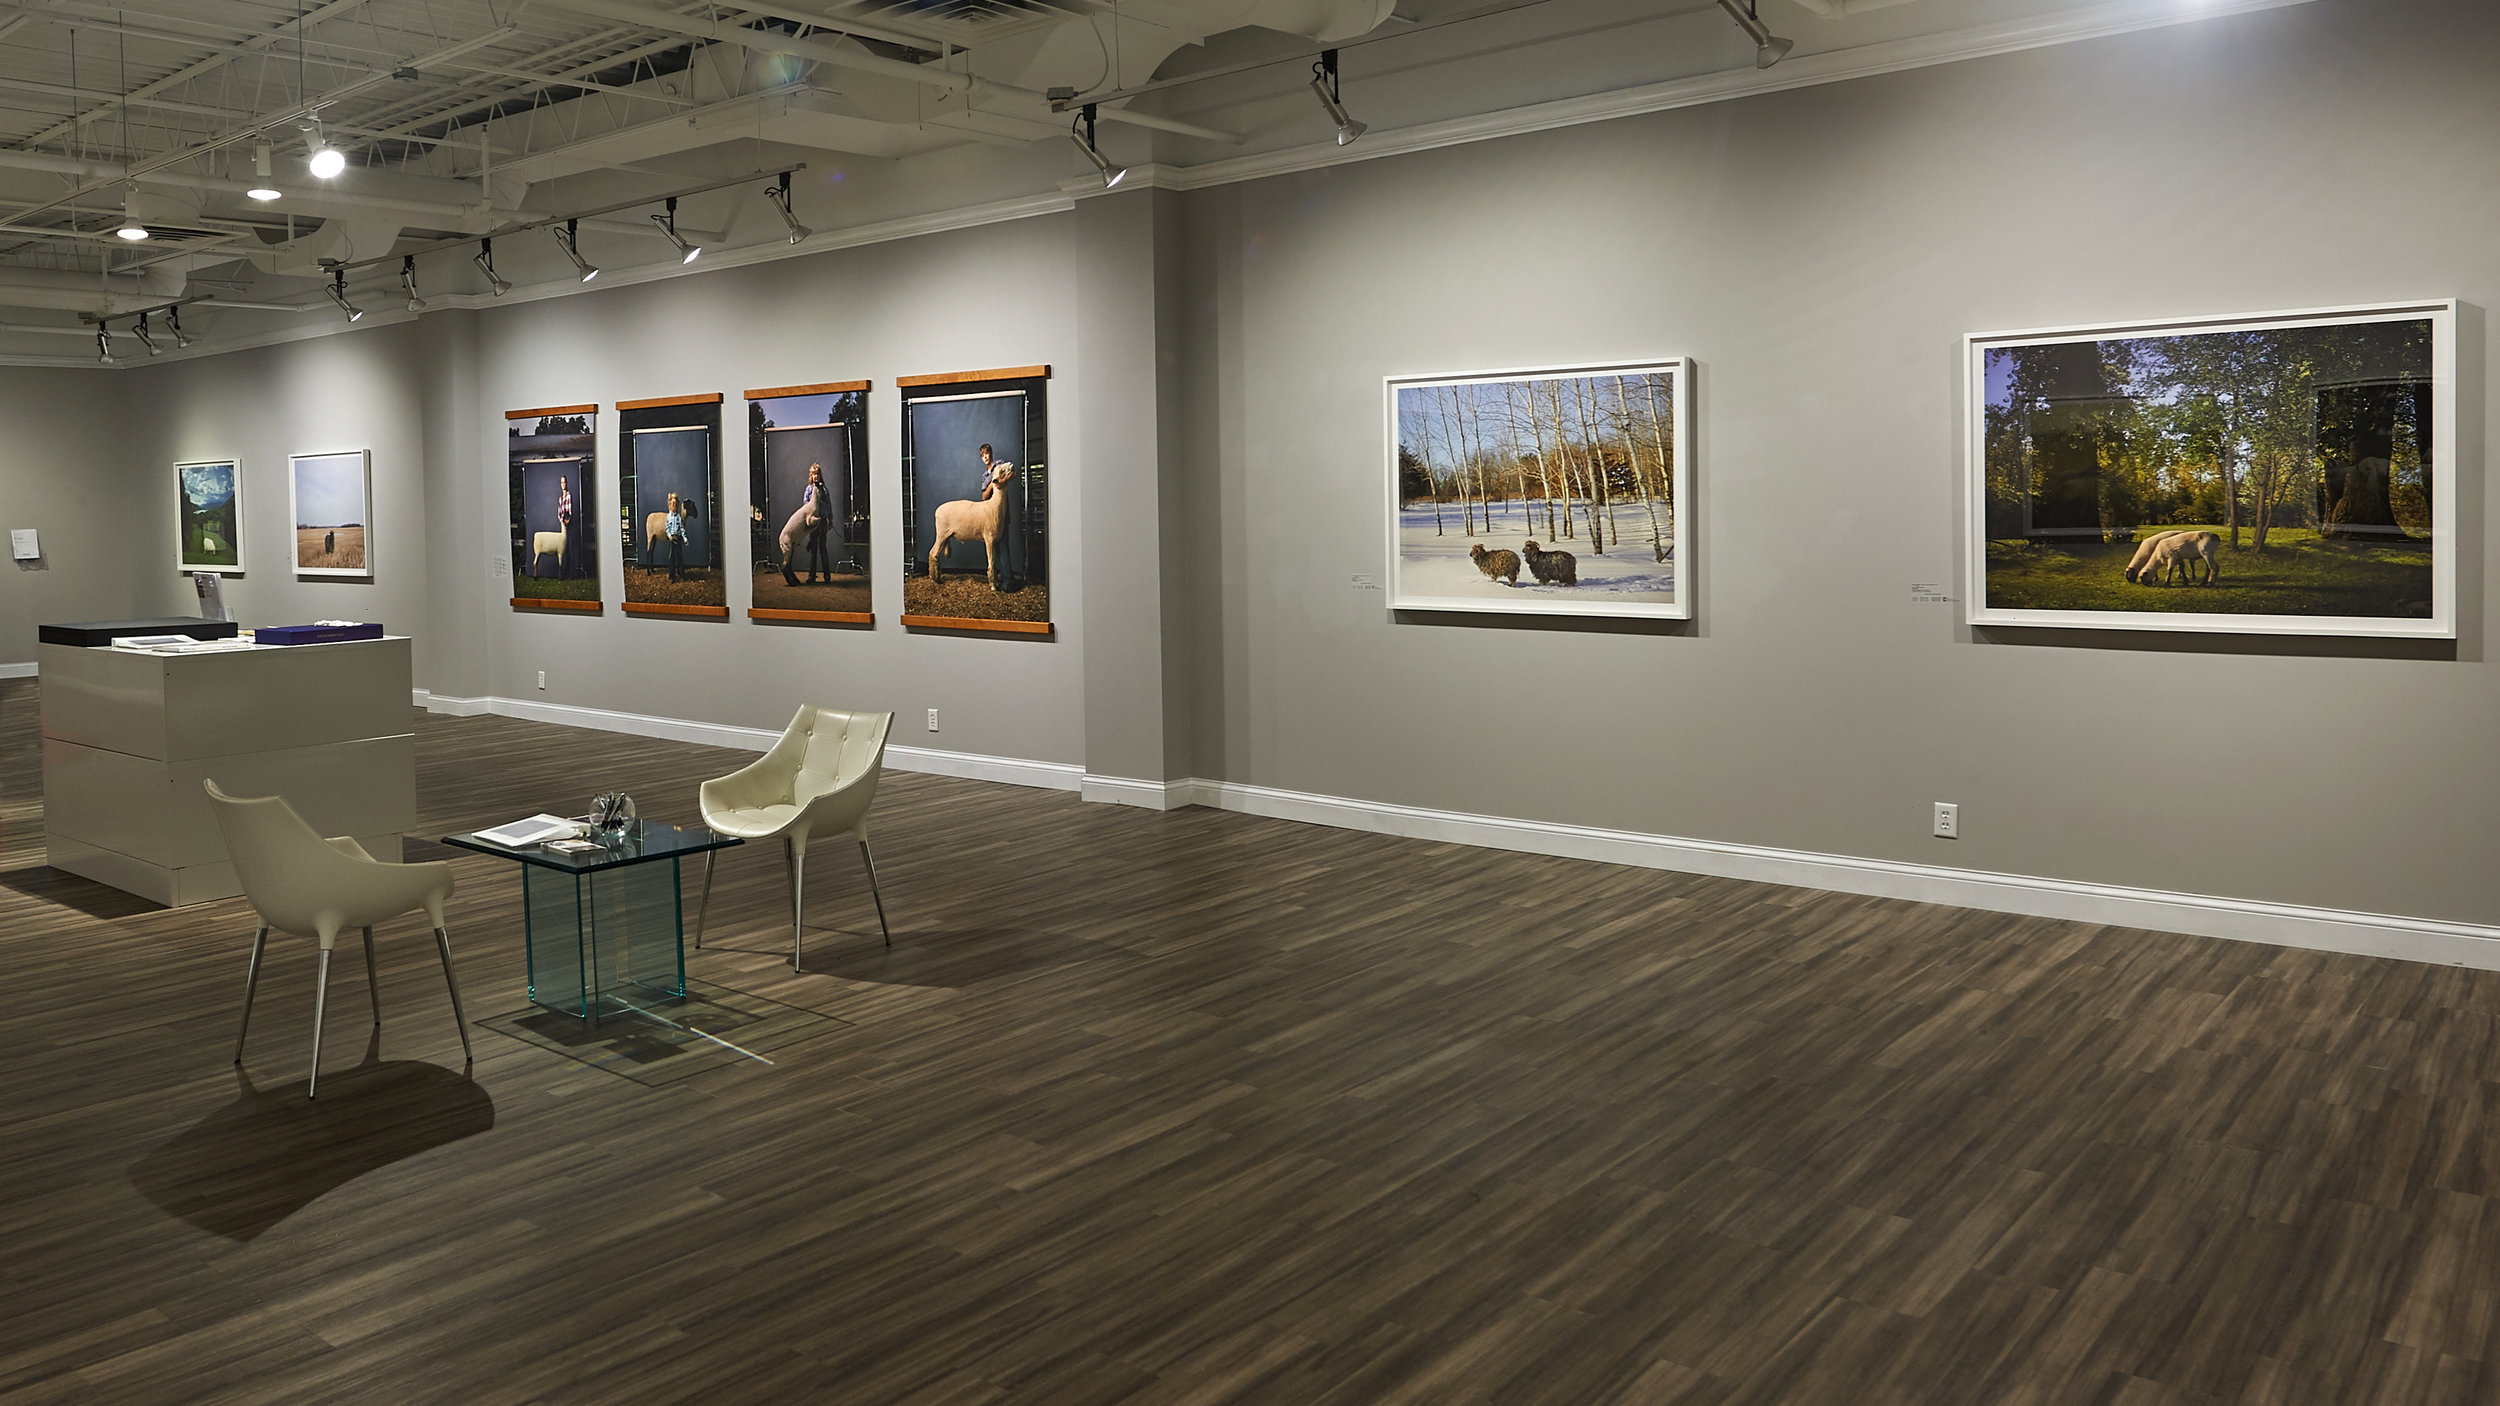 Selections from the exhibition at Burnet Fine Art & Advisory, Minnesota. 2018.